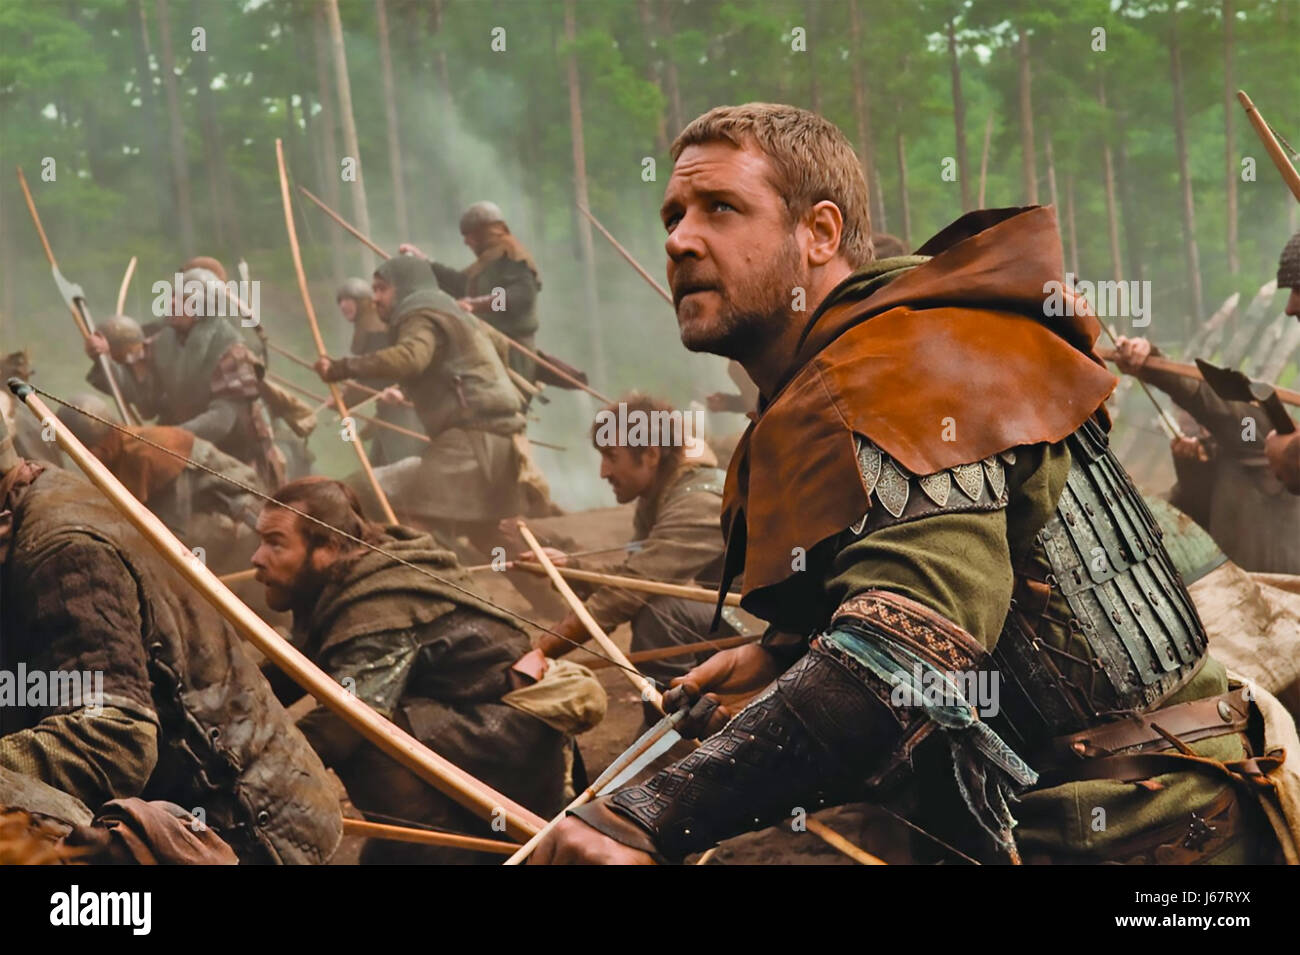 ROBIN HOOD 2010 Universal film with Russell Crowe - Stock Image